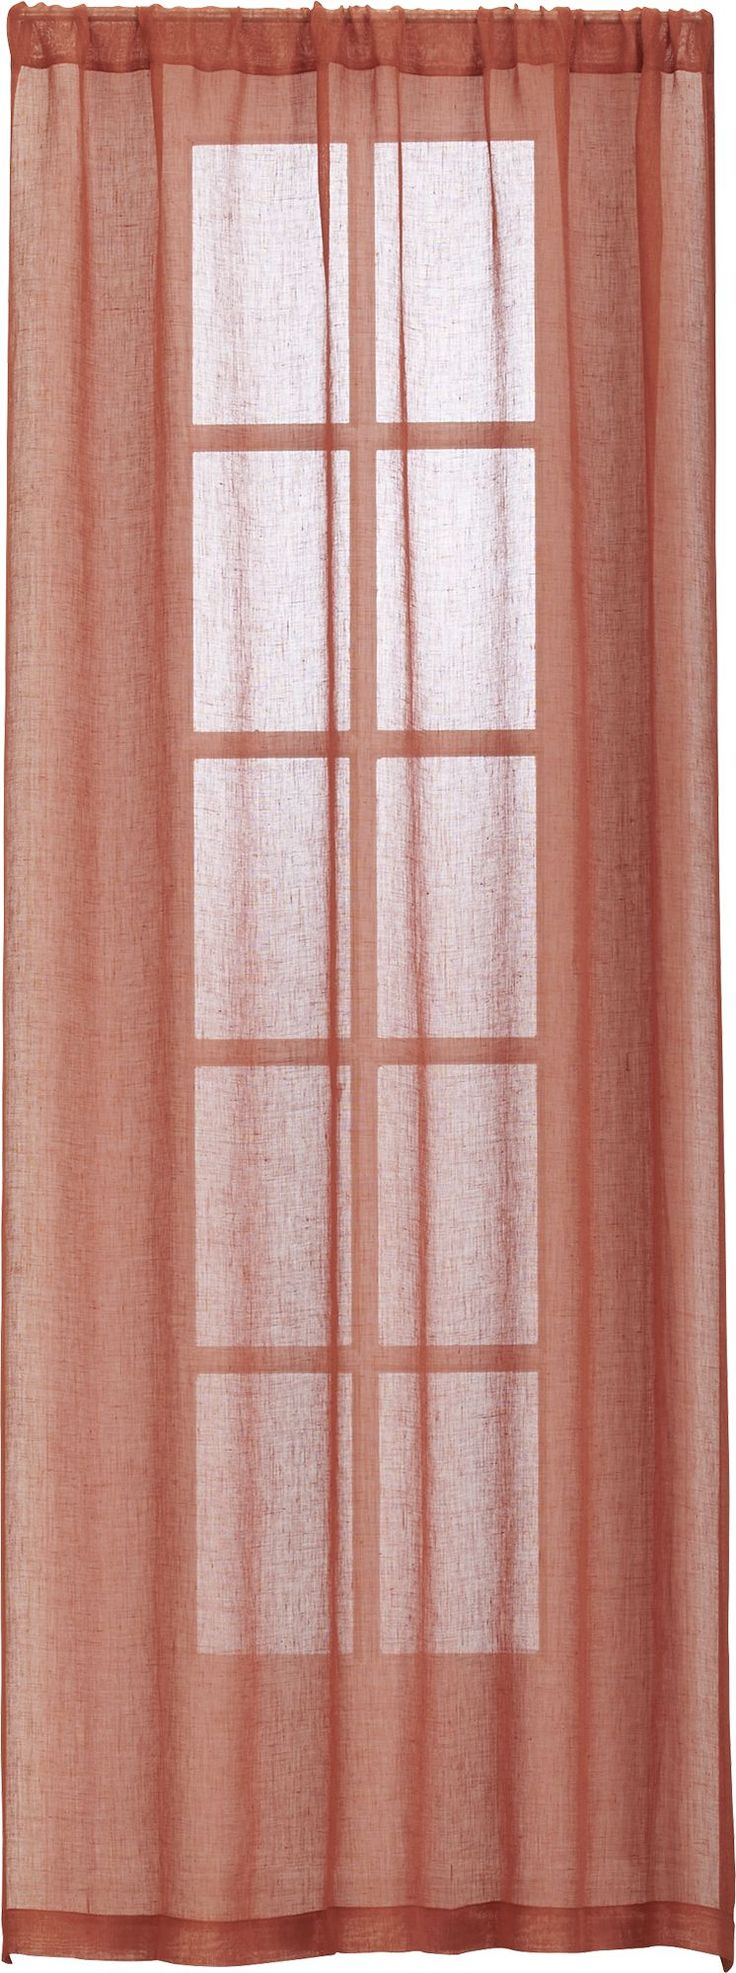 1000 Ideas About Sheer Curtain Panels On Pinterest Sheer Curtains Curtains And Panelling